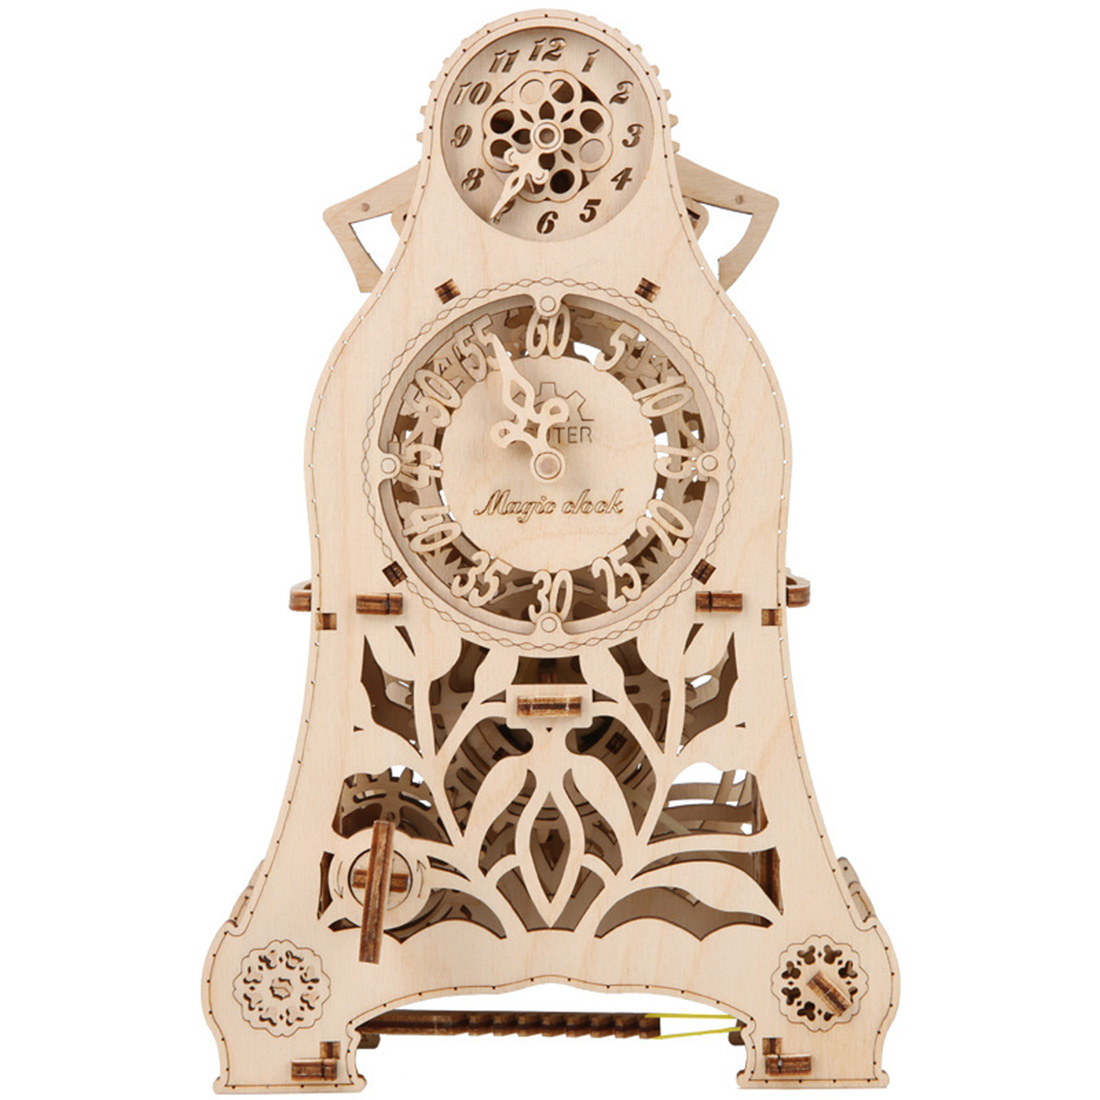 Diy Assembly Toys Wooden Mechanical Transmission Model Magic Pendulum Clock Woodcraft Construction Kit Assembly Puzzle Toy